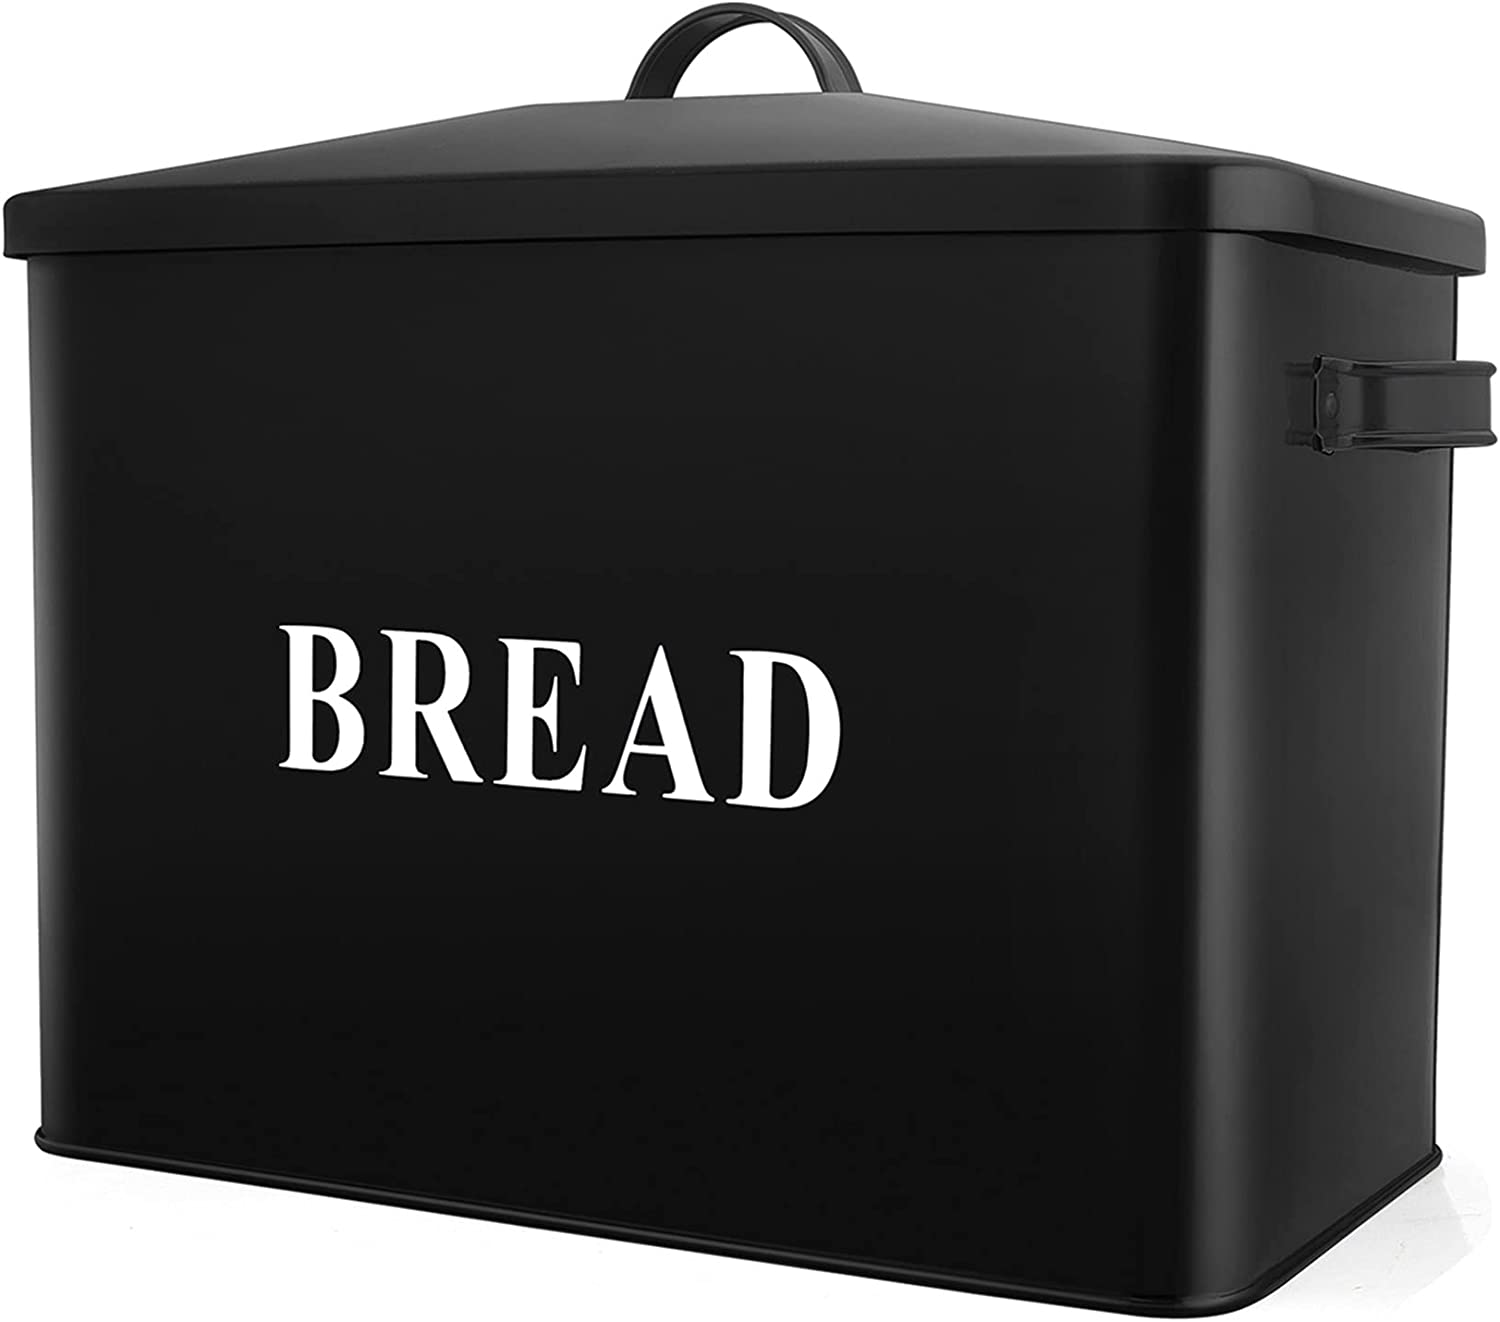 Extra Large Black Bread Box with Easy-to-use OFFicial store Metal PP CHEF Lid Stora